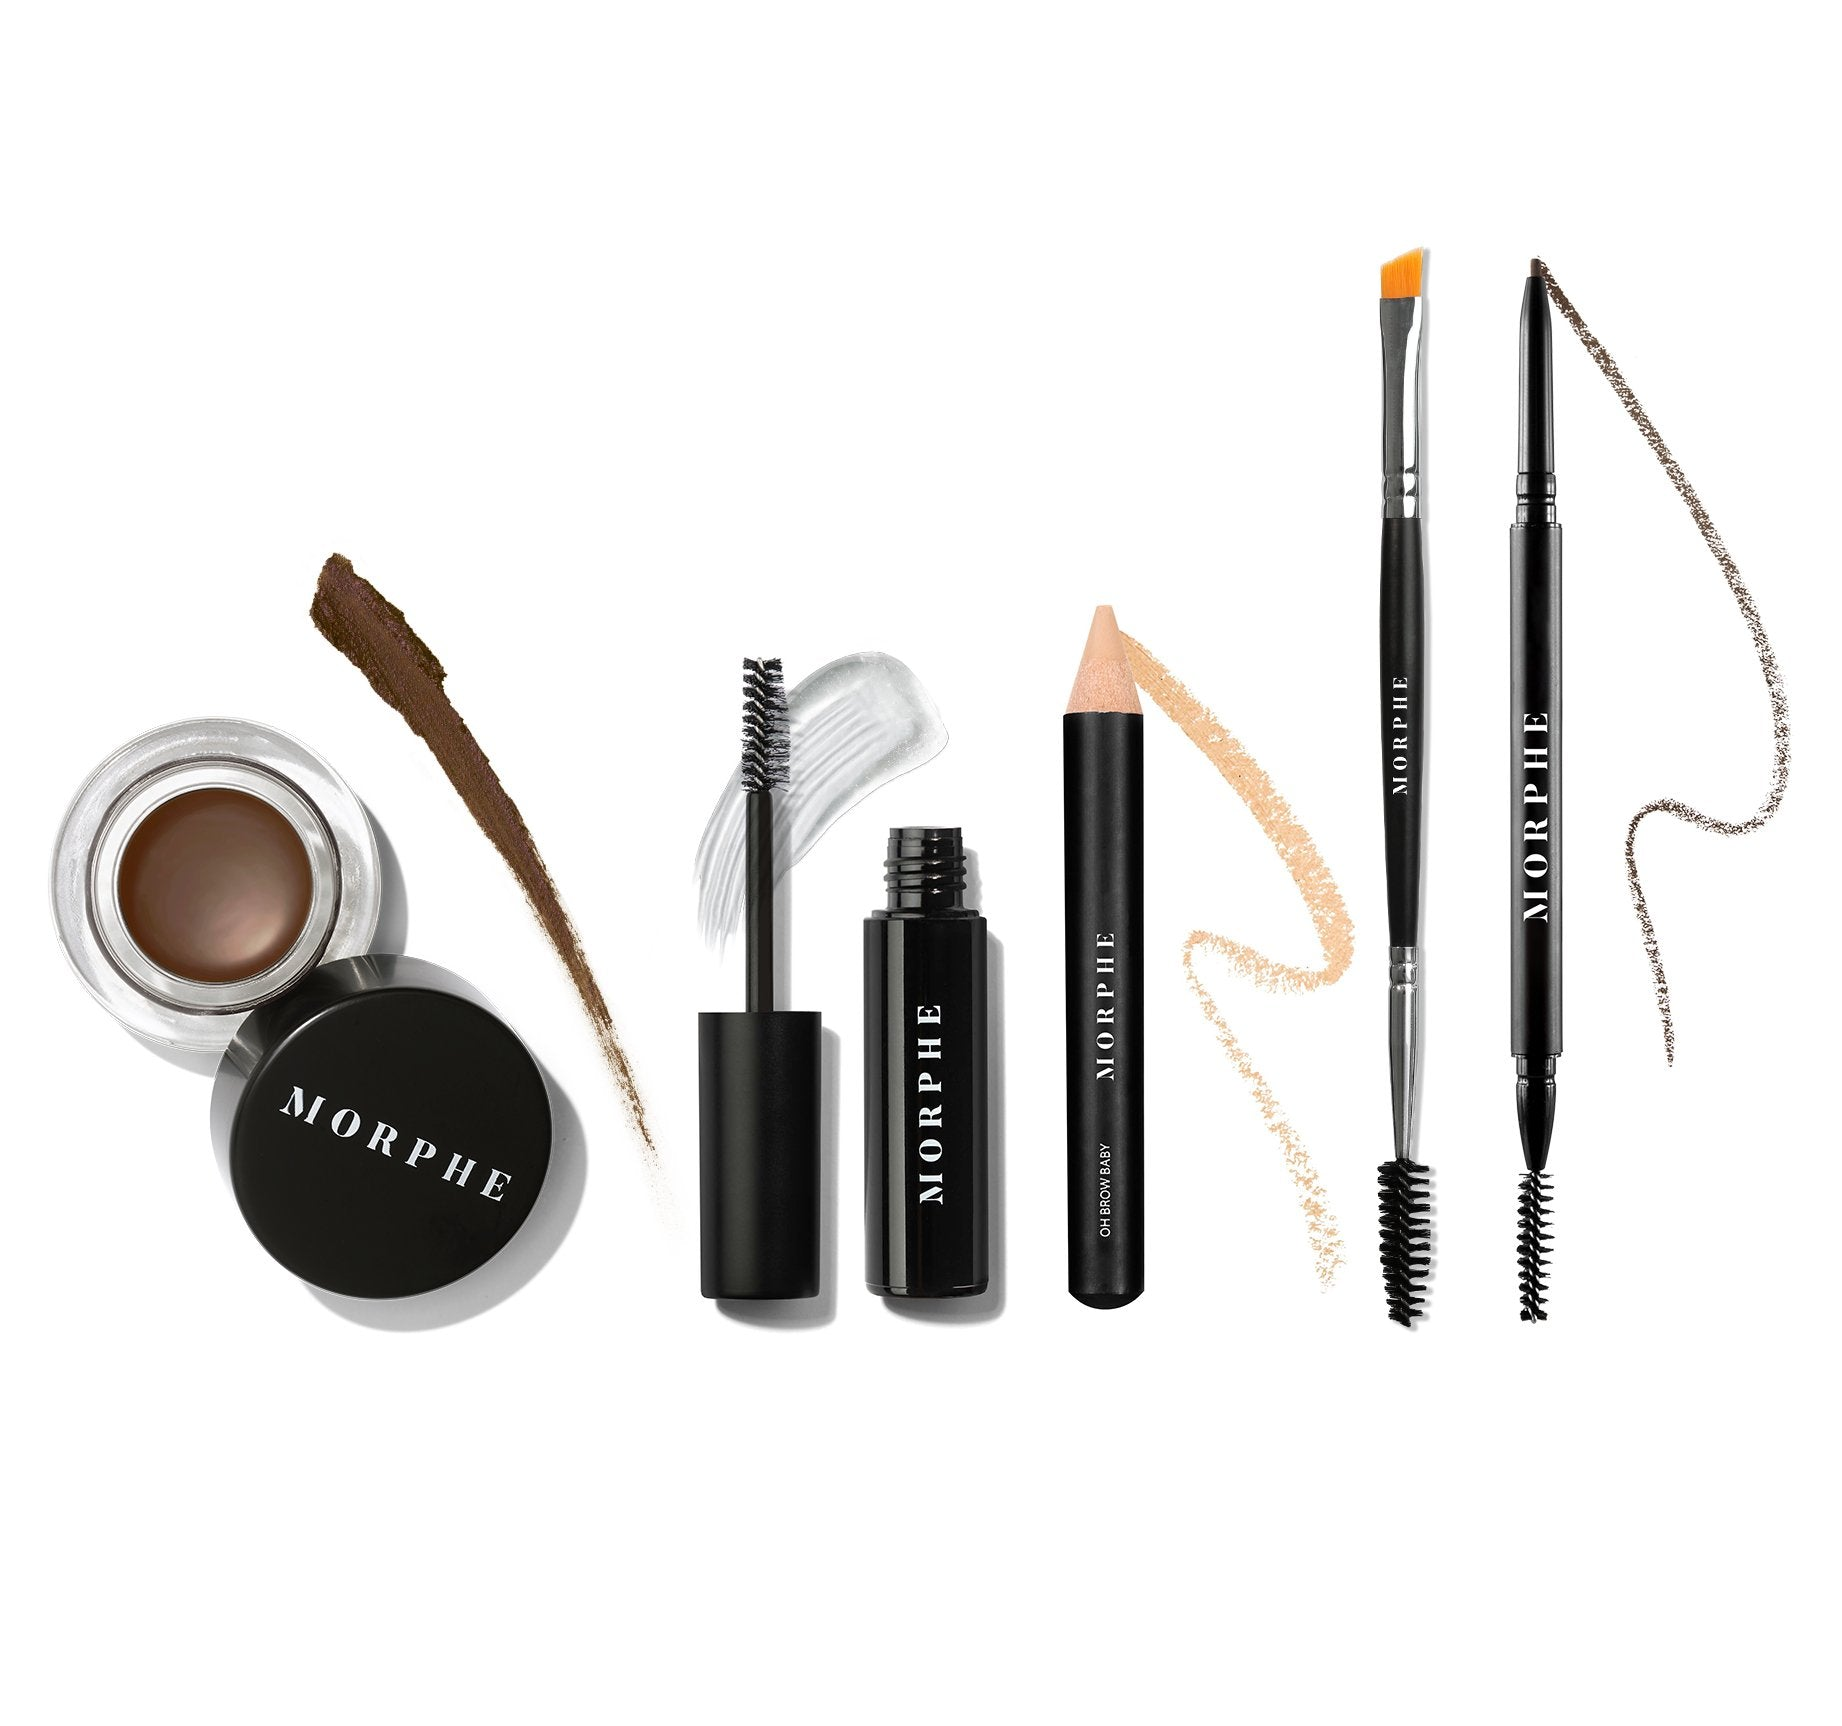 ARCH OBSESSIONS BROW KIT - MOCHA, view larger image